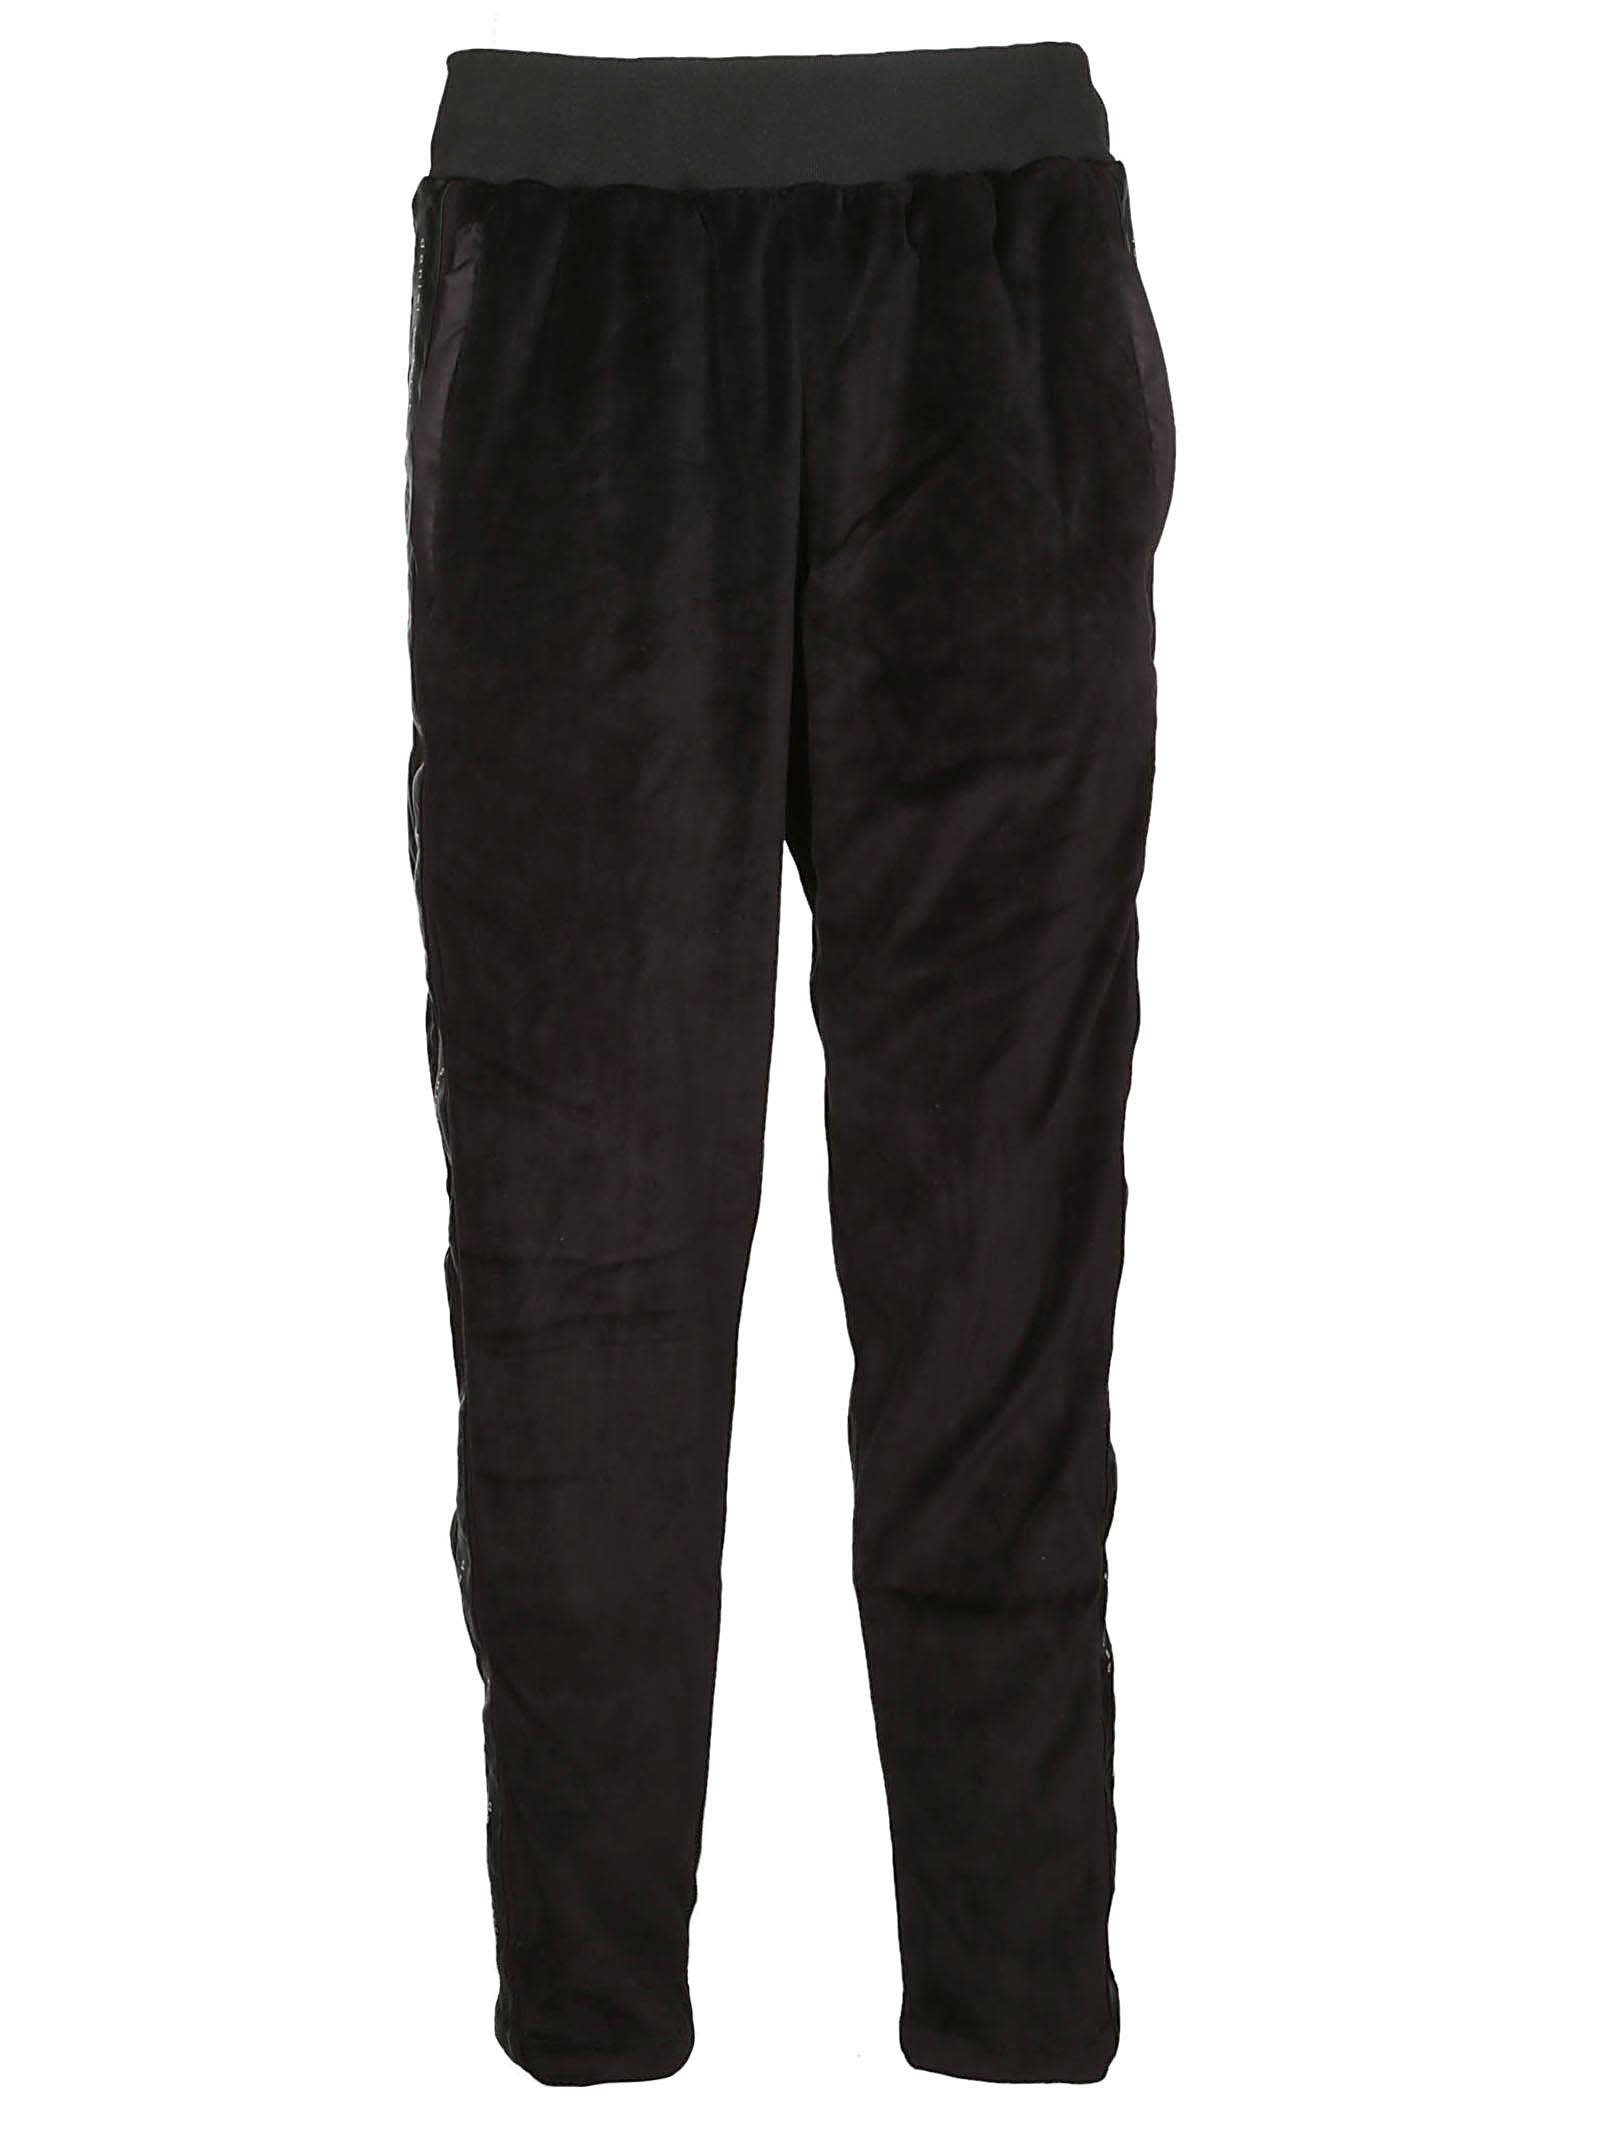 DANIEL PATRICK Elasticated Trousers in Black